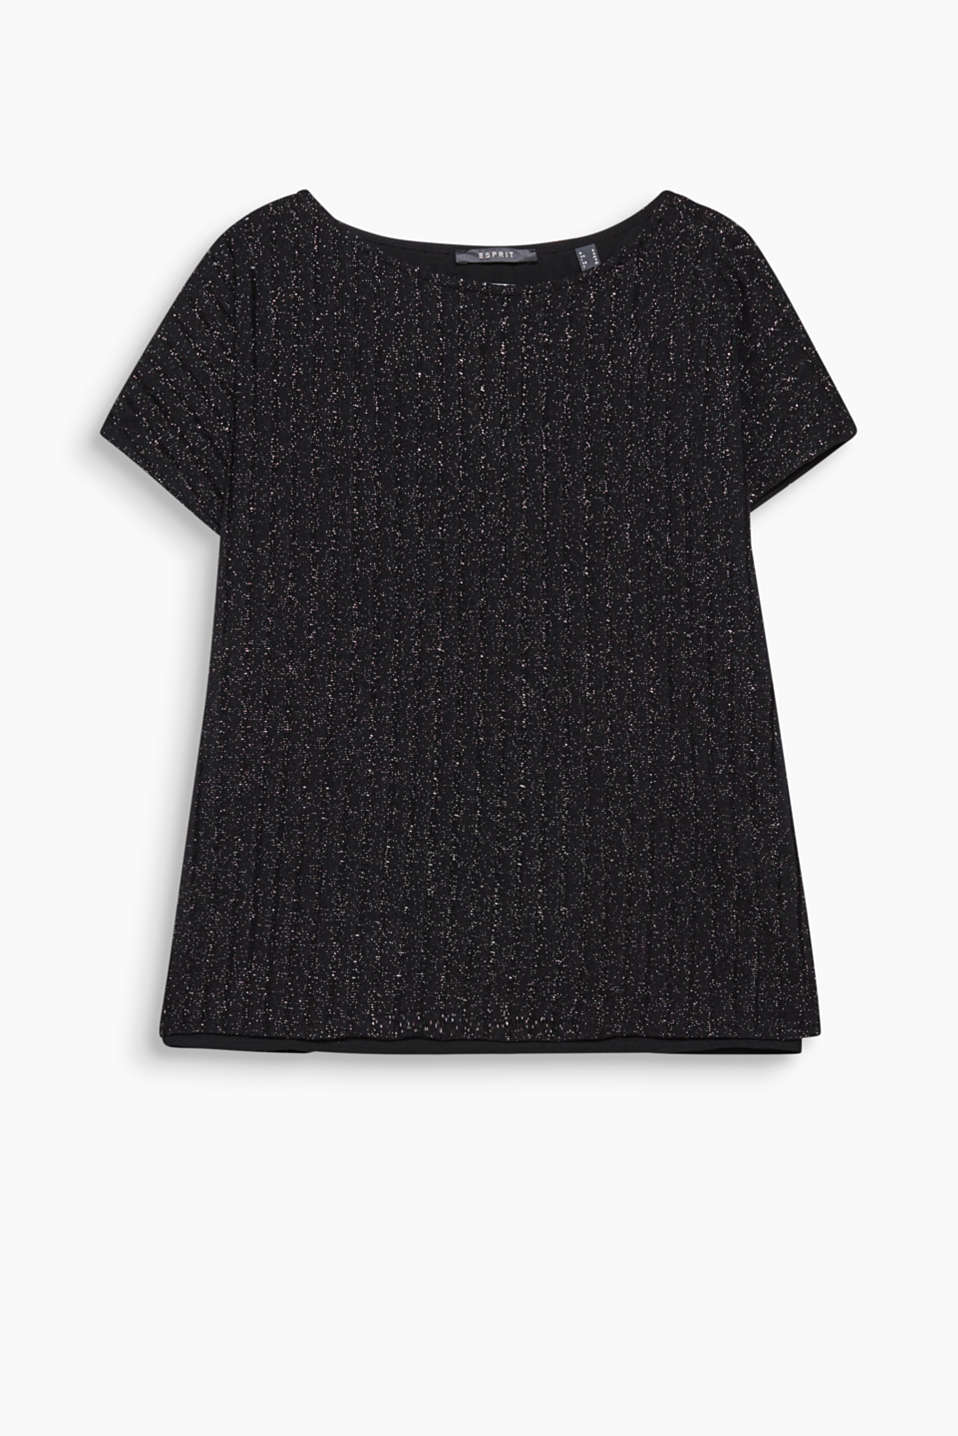 Laid-back, layered T-shirt with semi-transparent stripes and a subtle shimmer